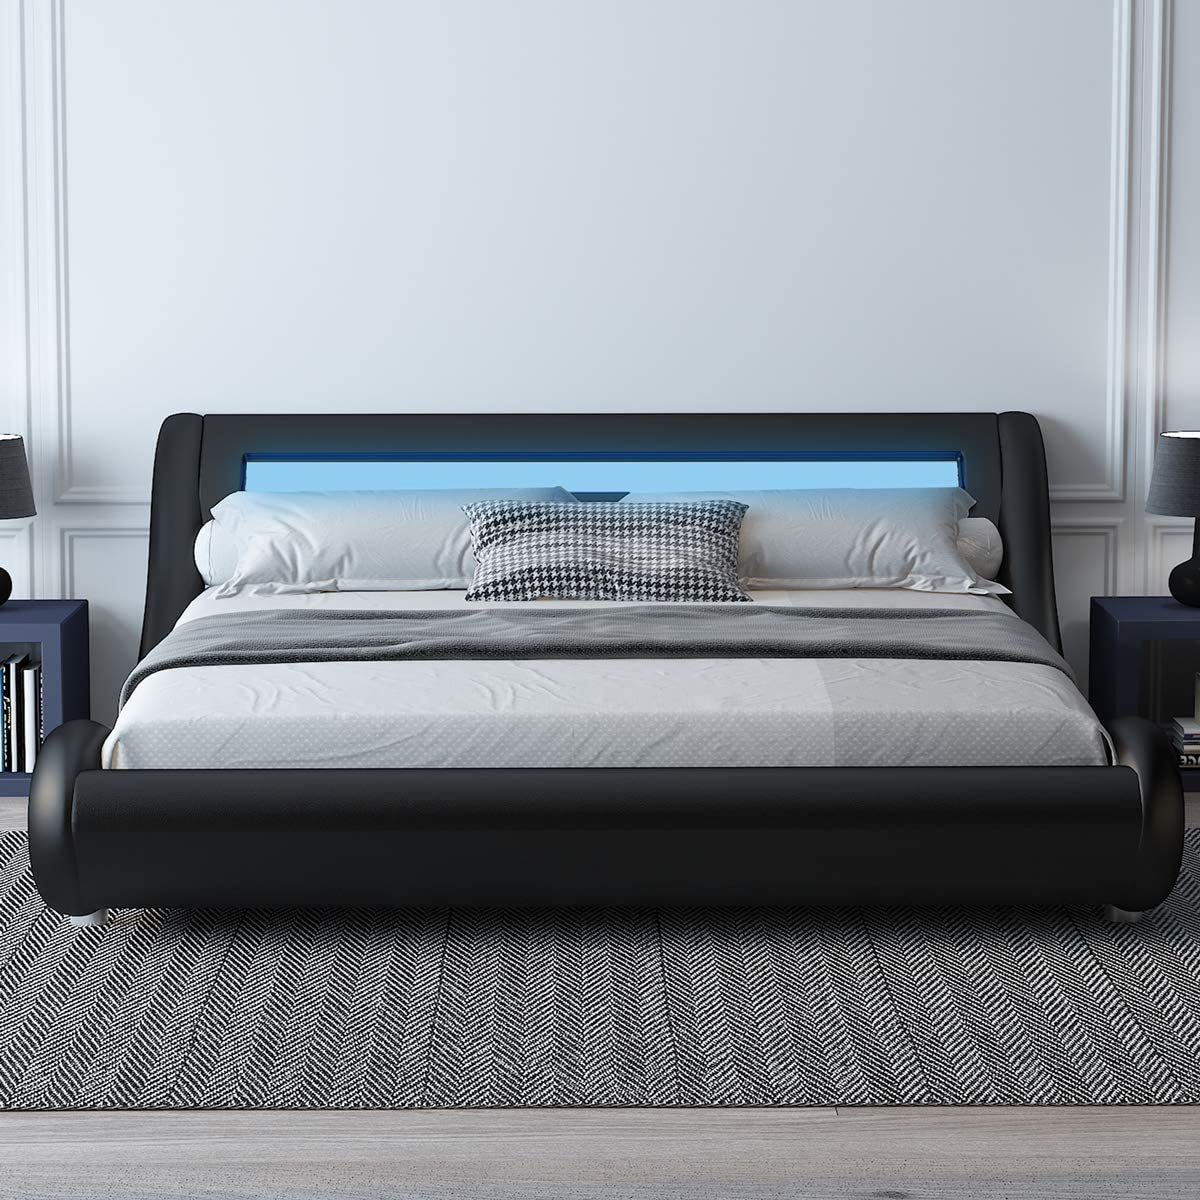 Amolife Upholstered Full Size Bed Frame with Adjustable LED Lights Headboard//Deluxe Solid Modern Platform Bed with Slat Support//Low Profile Curved Faux Leather Bed Frame,Black and White